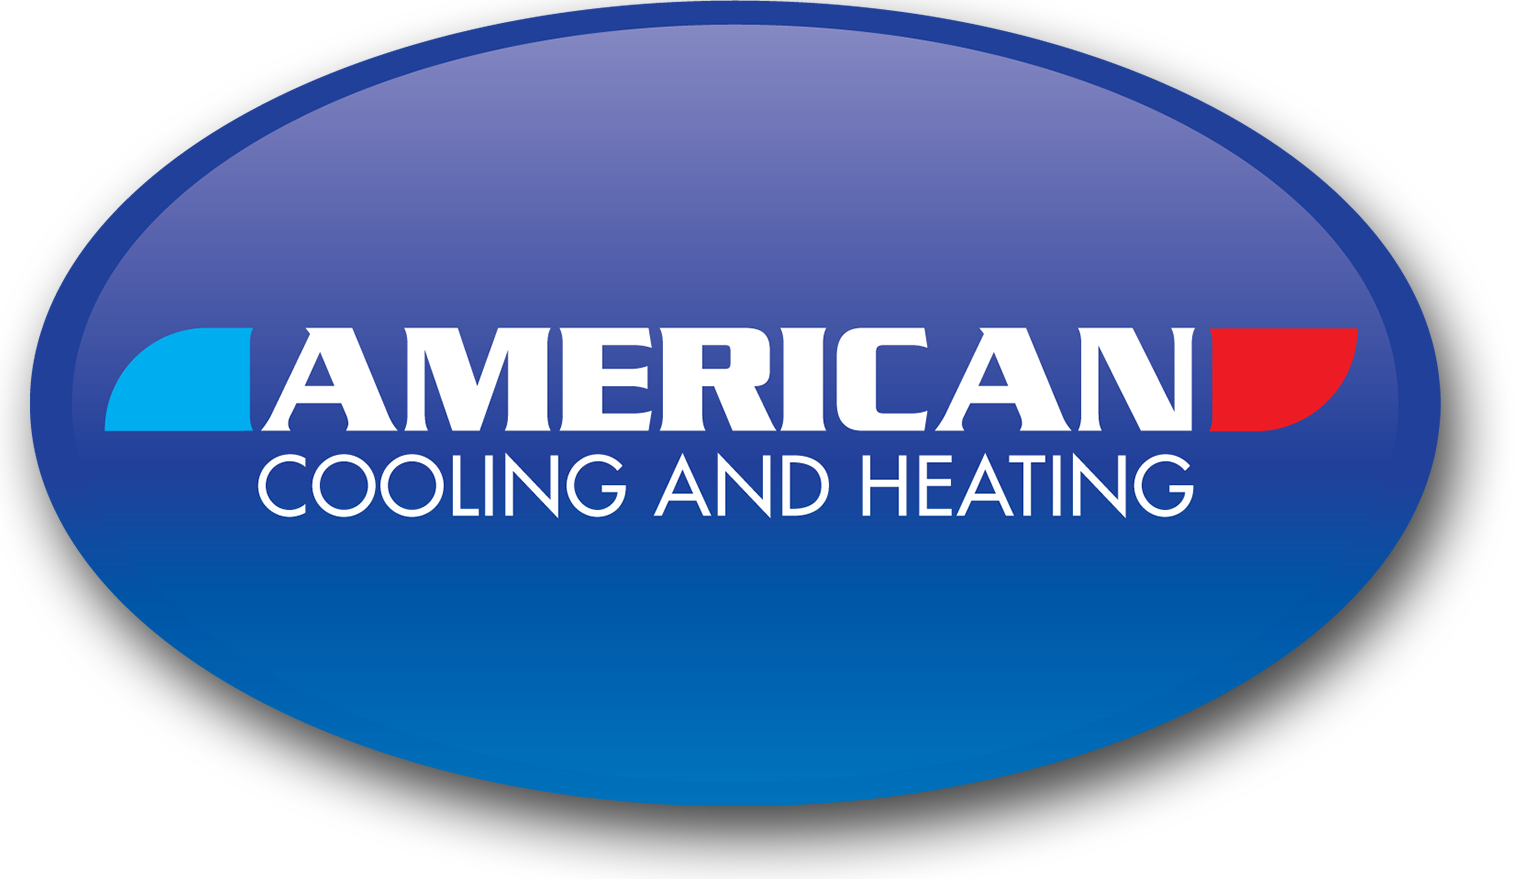 Arizona Air Conditioning And Heating Service